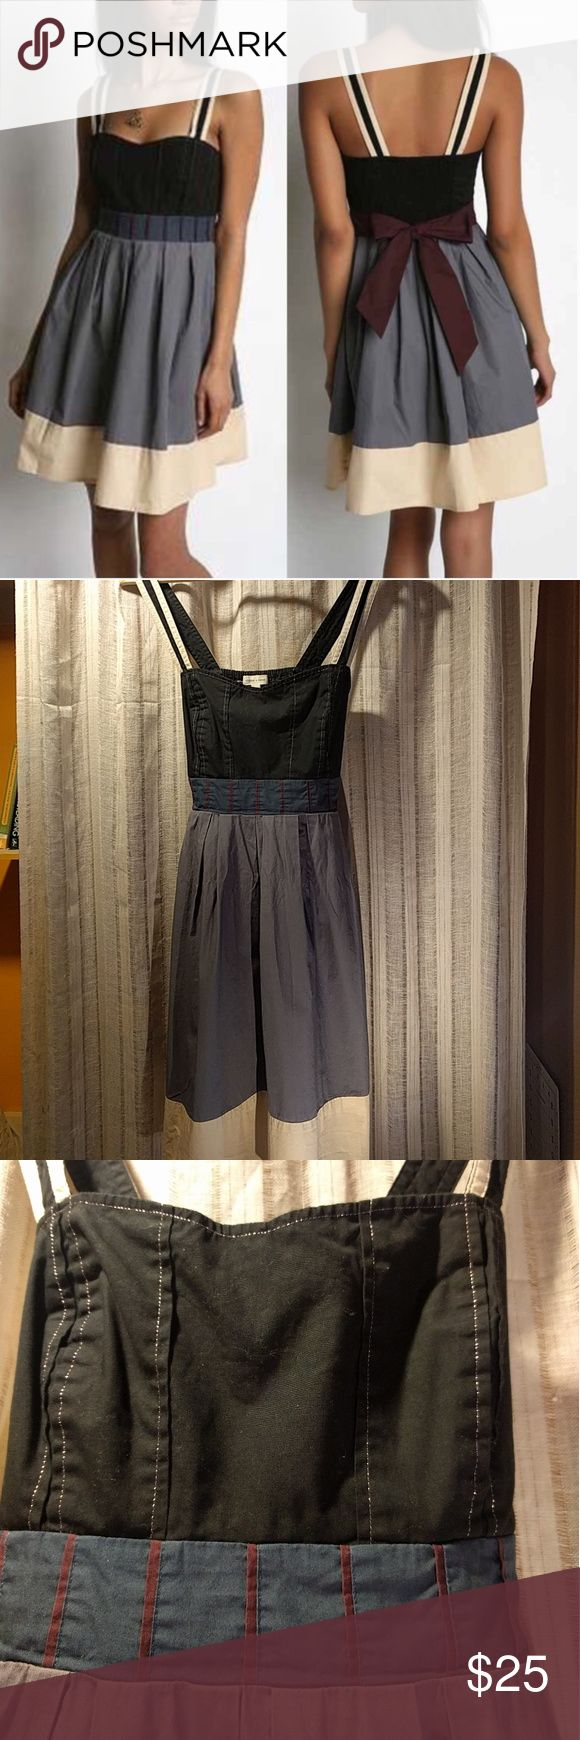 Silence + Noise Color Block Sleeveless Dress Fit & Flare dress, sleeveless with tie back waist and scrunchy elastic on back. Metallic silver contrast stitching on bodice. Beautiful dress. Urban Outfitters Dresses Midi